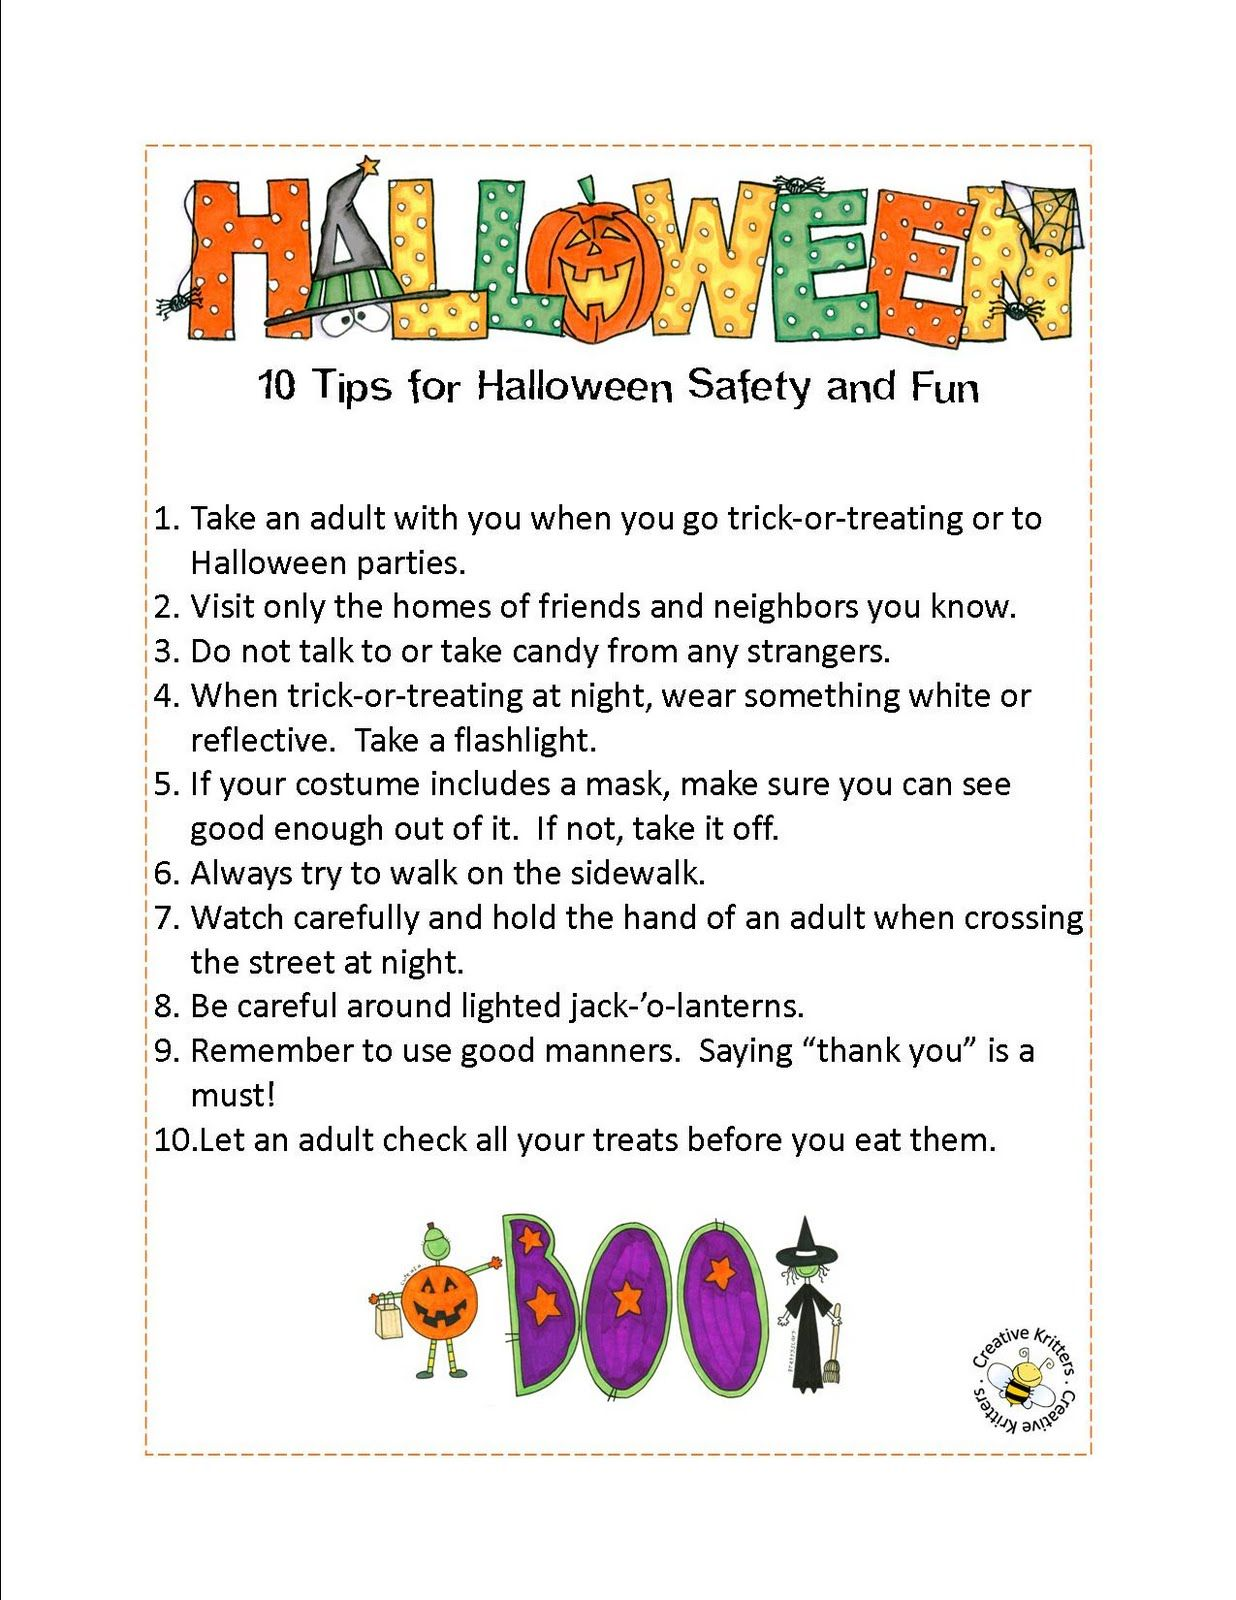 Creative Kritters Halloween Safety Tips